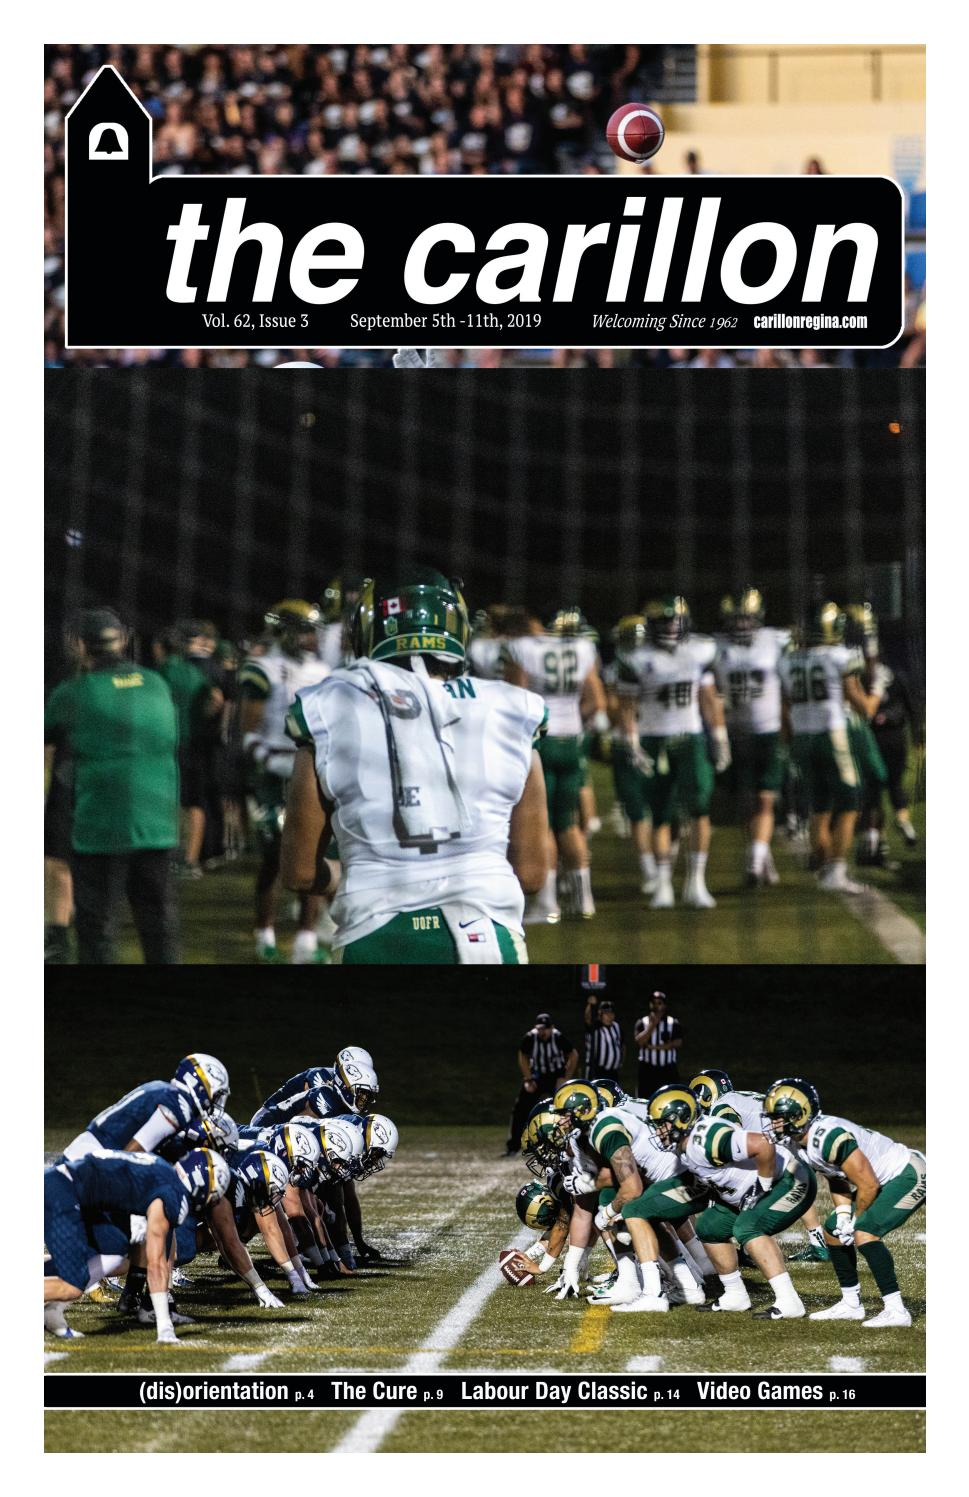 Carillon Volume 62 Issue 3 By The Carillon Newspaper Issuu